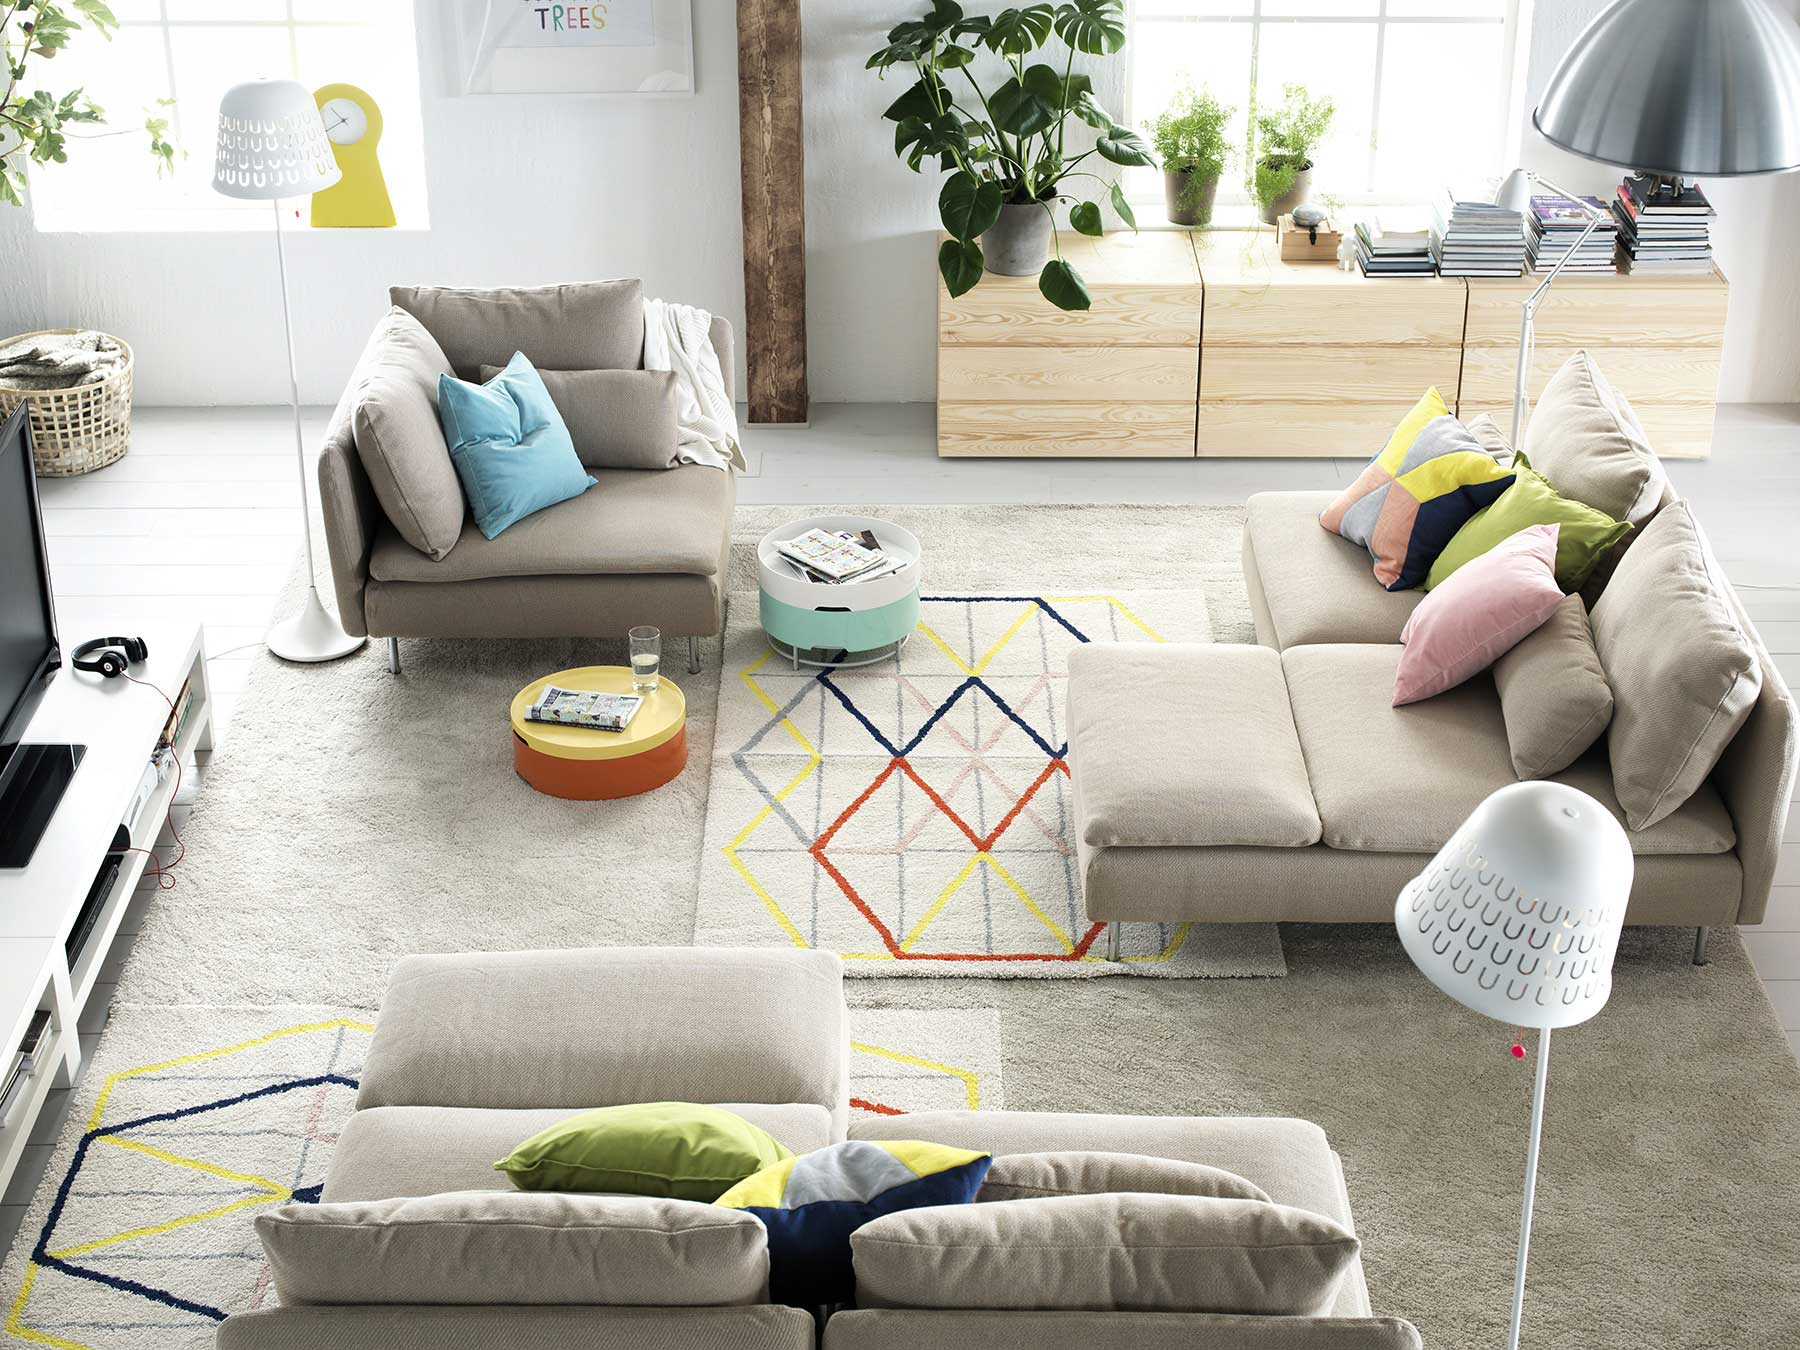 32 ambiances du catalogue ikea 2015 for Idee deco salon 2016